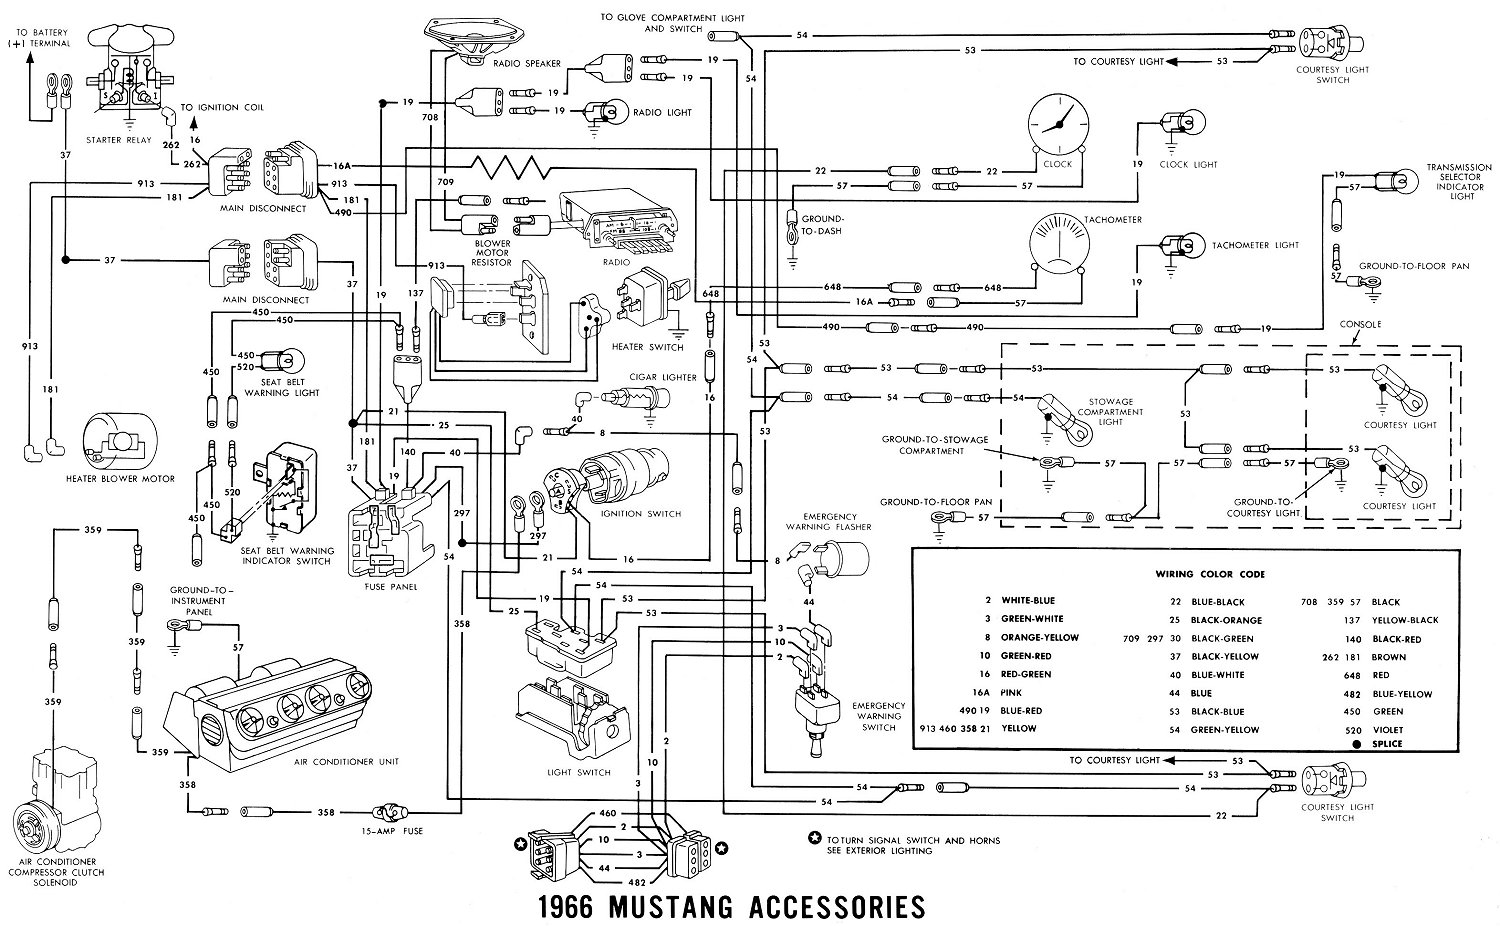 [SCHEMATICS_4FD]  2398 1944 Ford Truck Wiring Diagram | Wiring Library | 1966 Ford F100 Wiring Diagram |  | Wiring Library